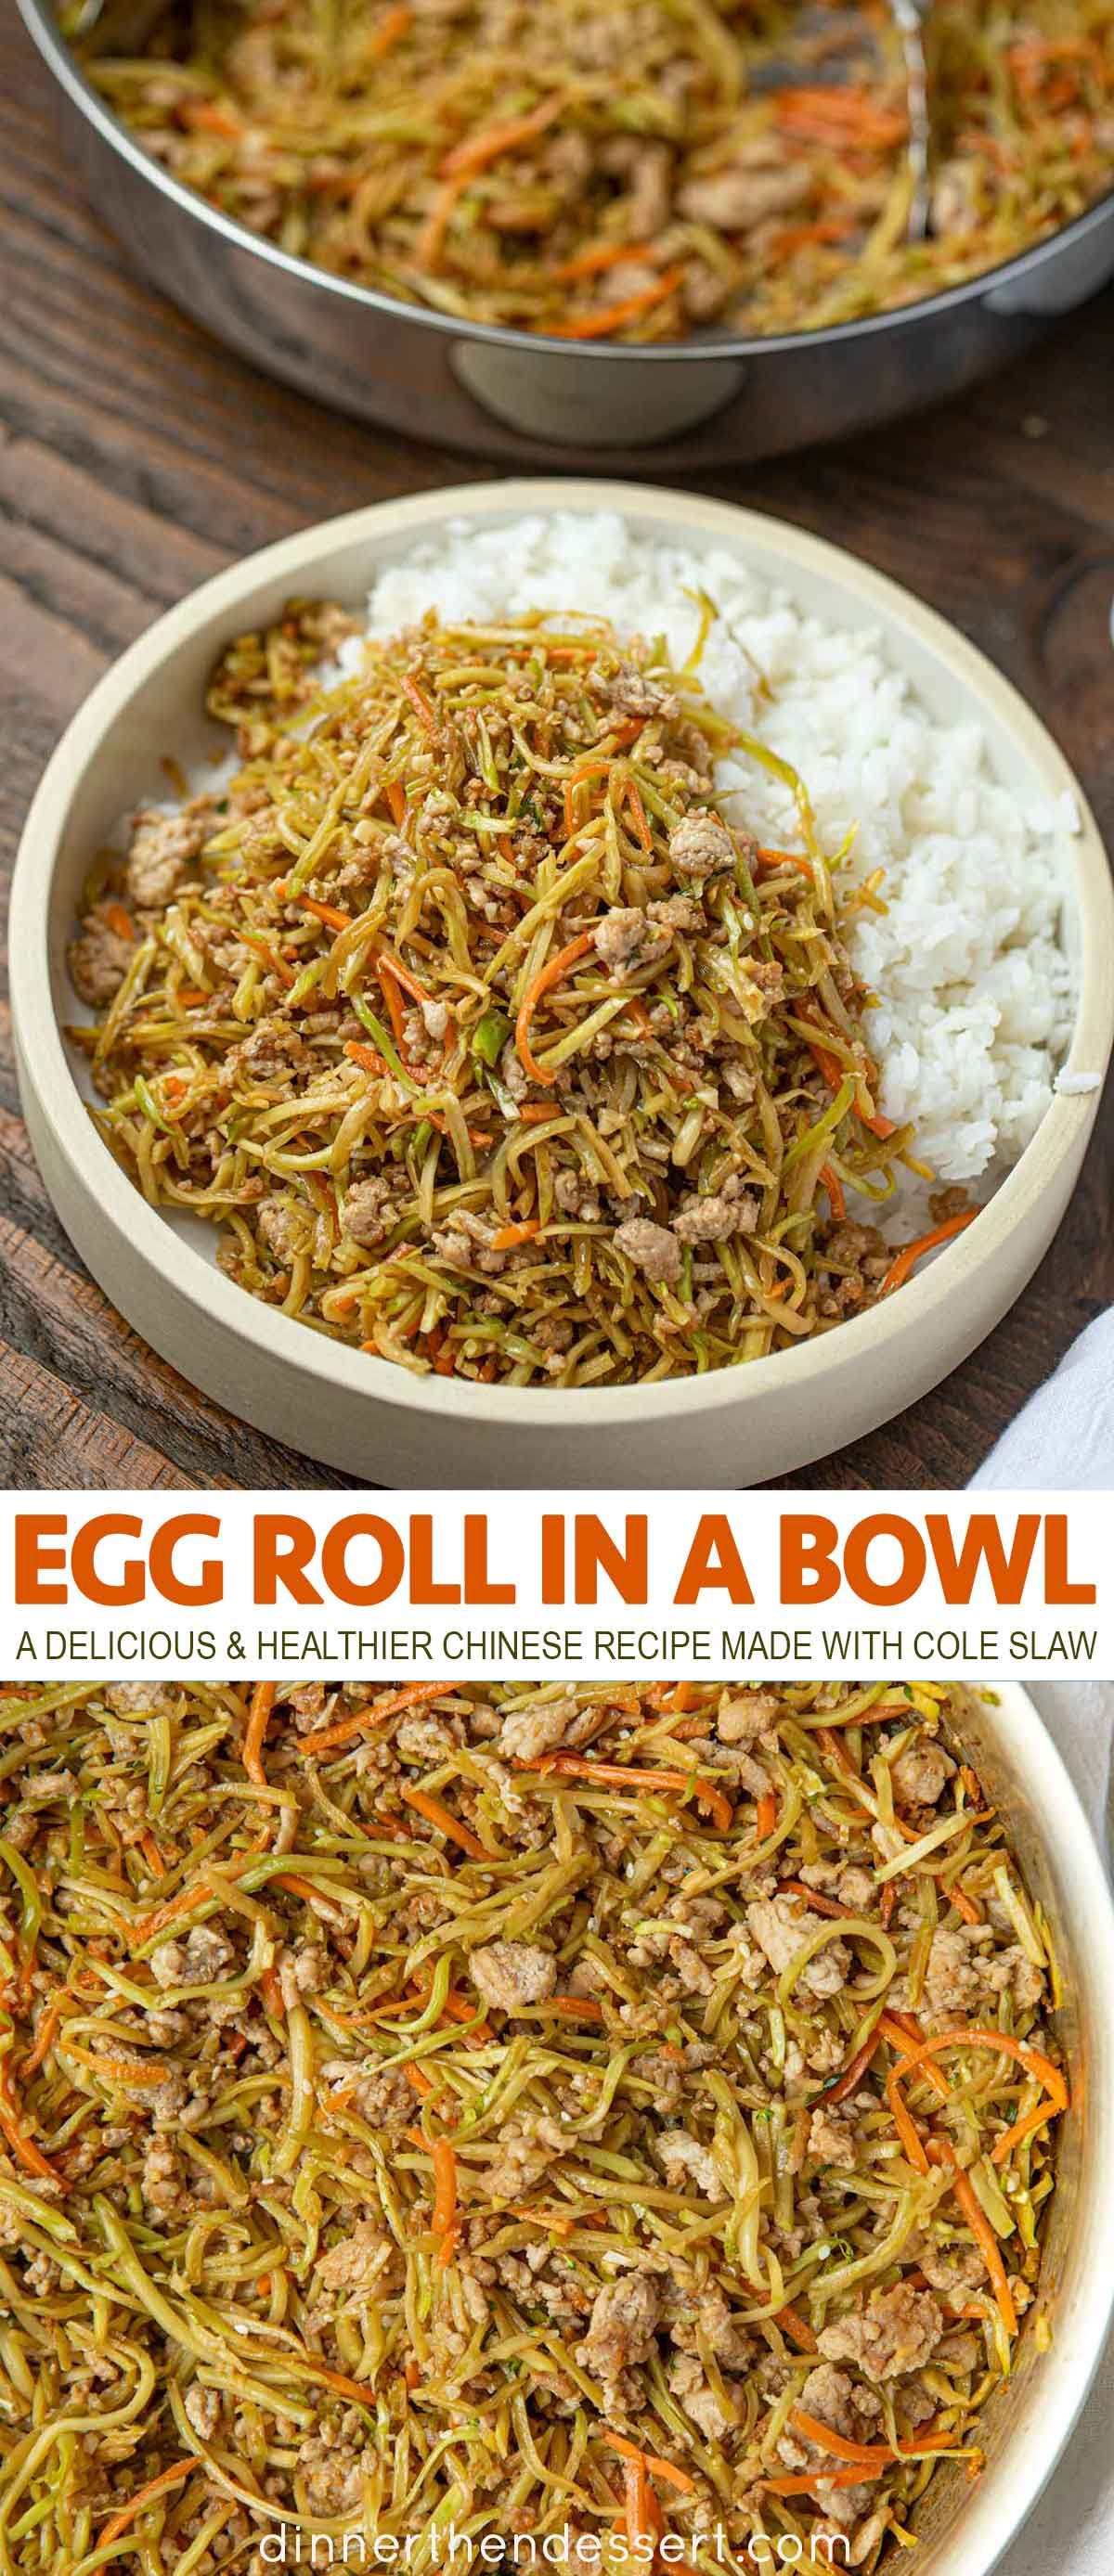 Egg Roll in a Bowl is a delicious healthier Chinese recipe made with cole slaw mix, soy sauce, sesame oil, ginger and pork. You can use ground chicken too! #eggroll #eggrollinabowl #chinesefood #asianfood #dinner #healthyrecipe #dinnerthendessert